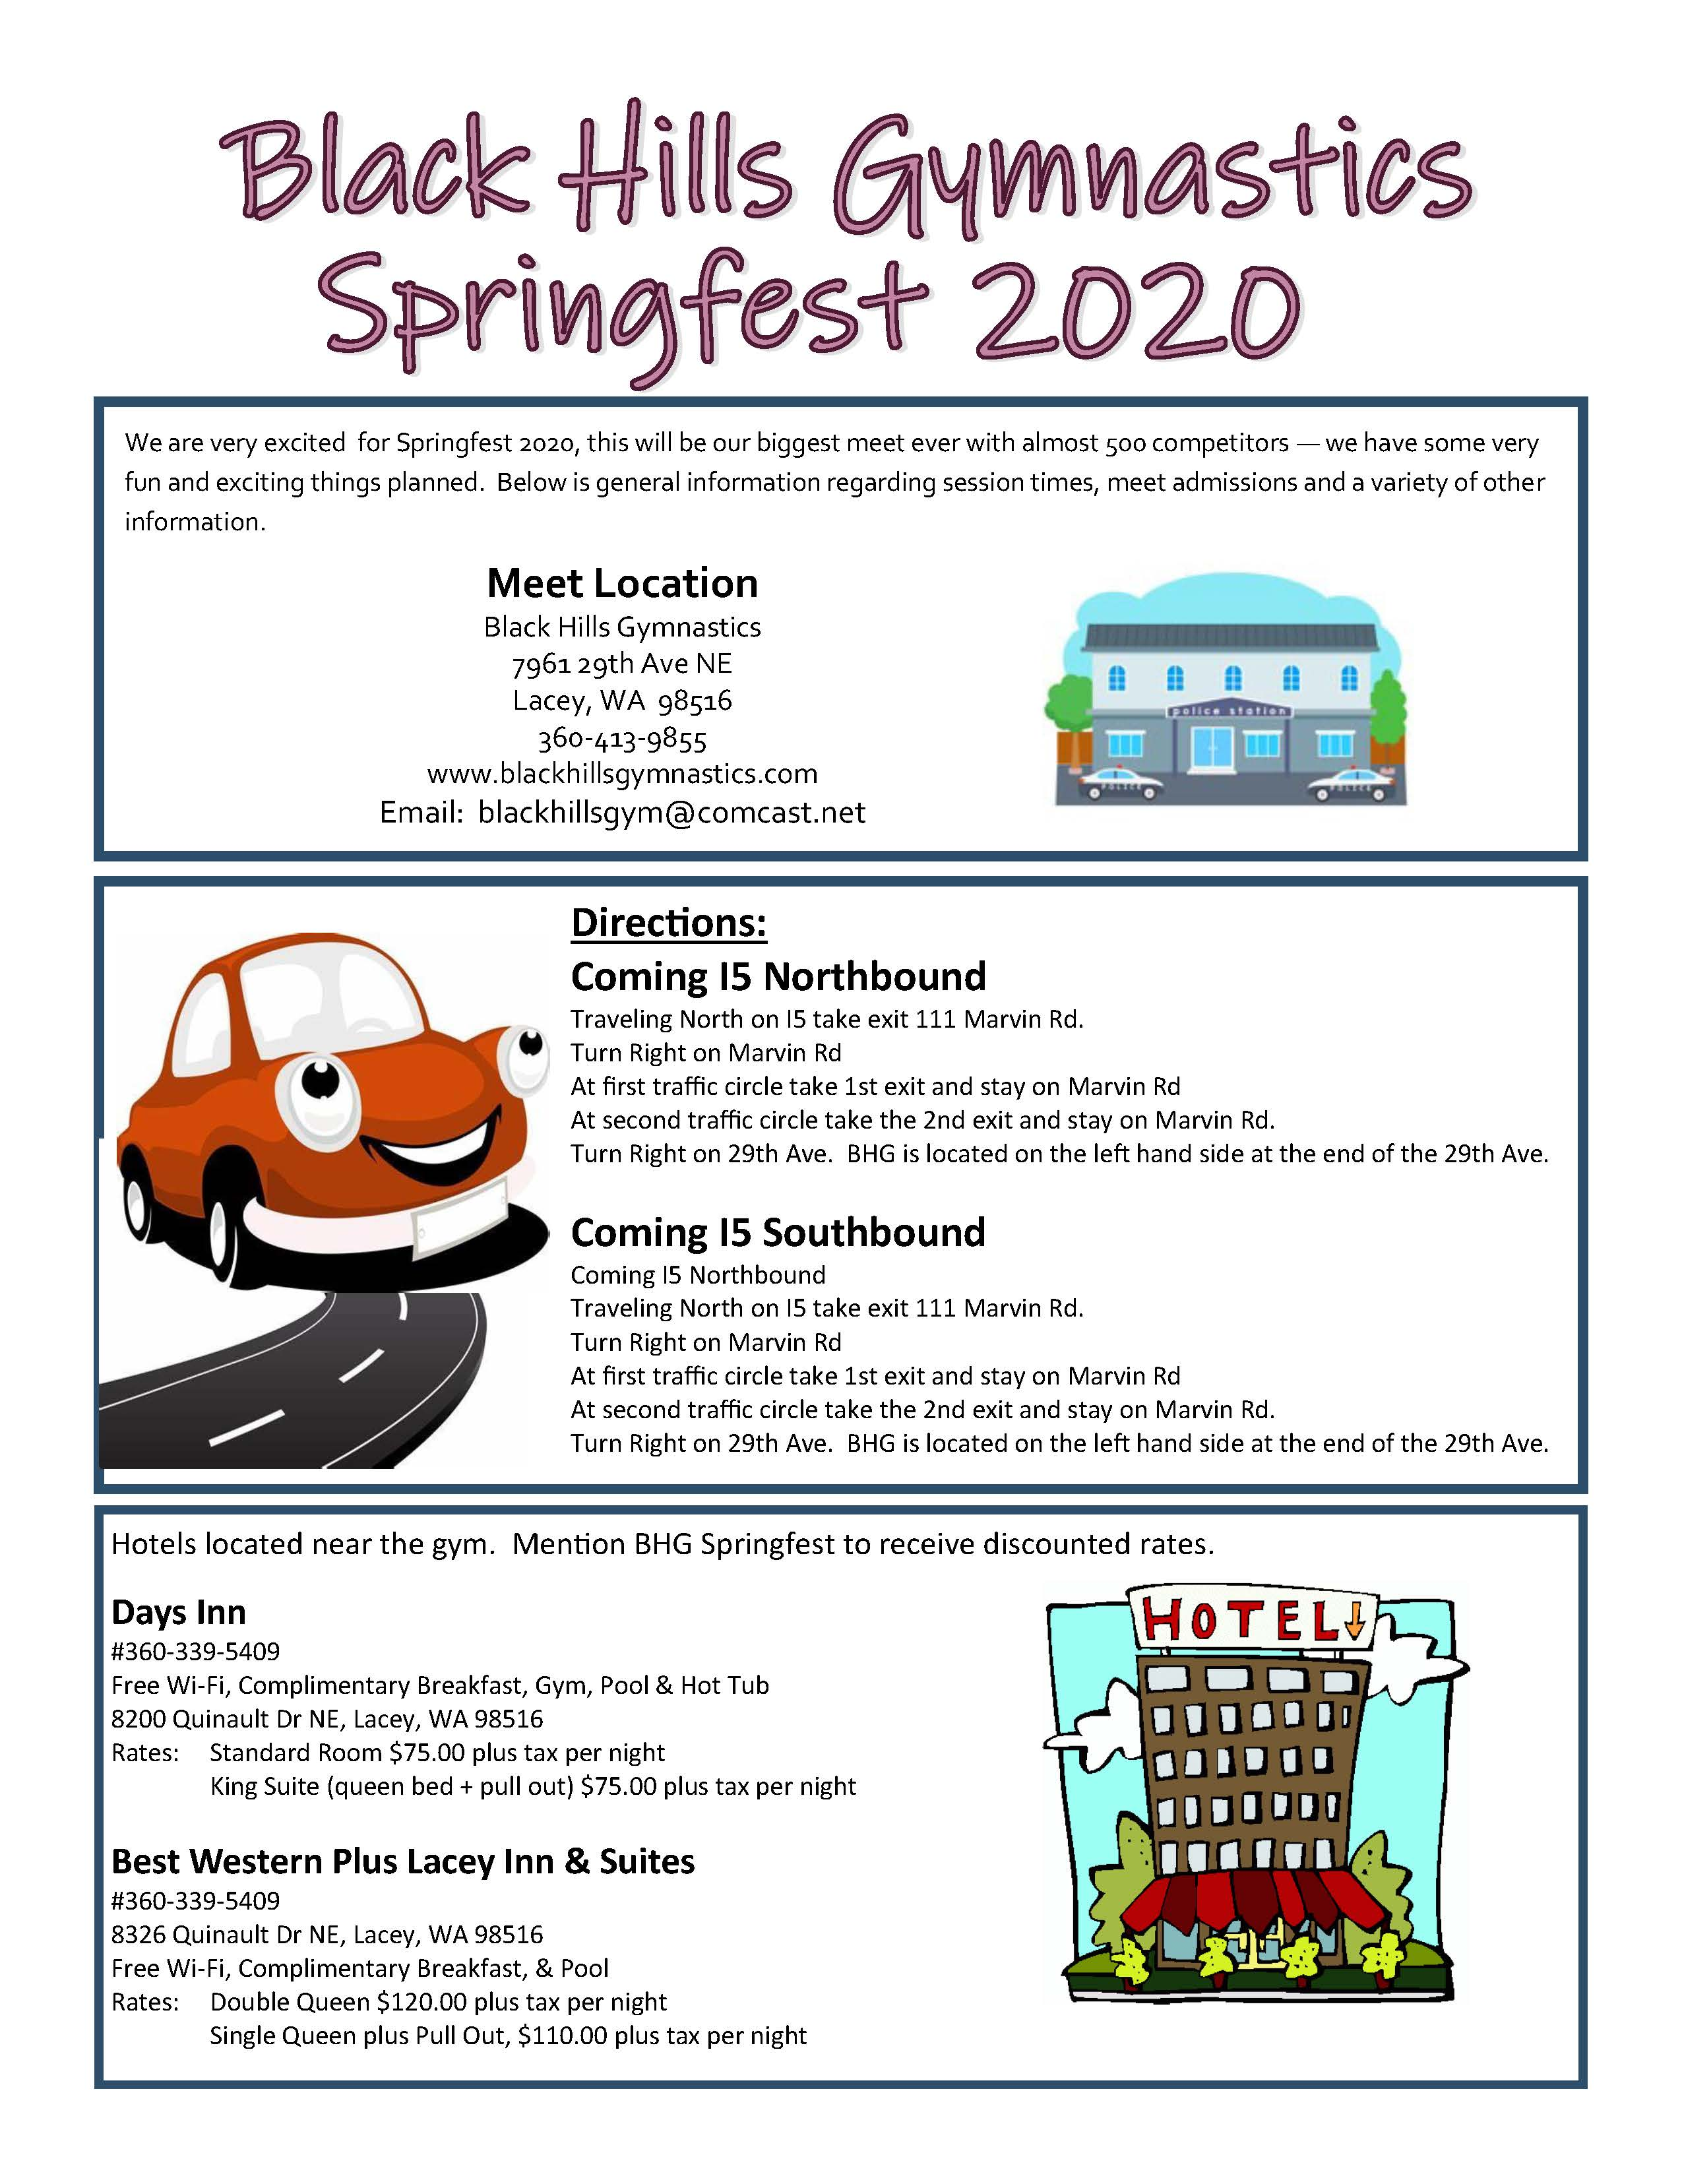 Springfest-2020-flyer (2)_Page_1